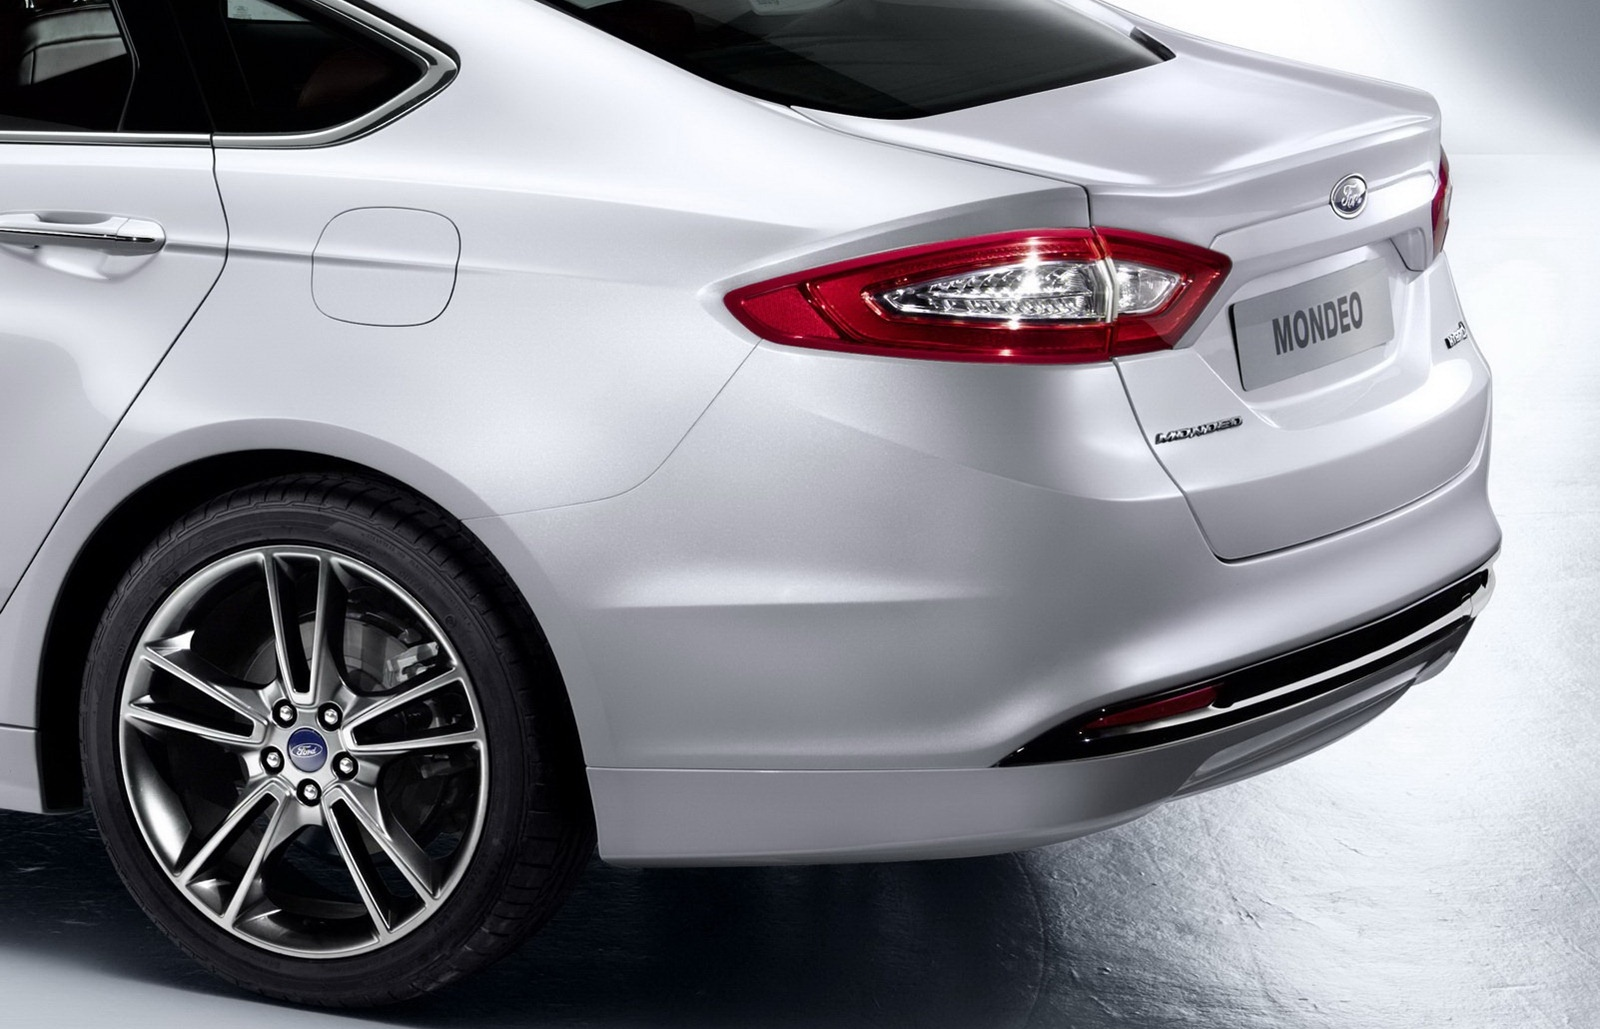 Releases First Official Photos of All-New 2013 Mondeo [Photo Gallery